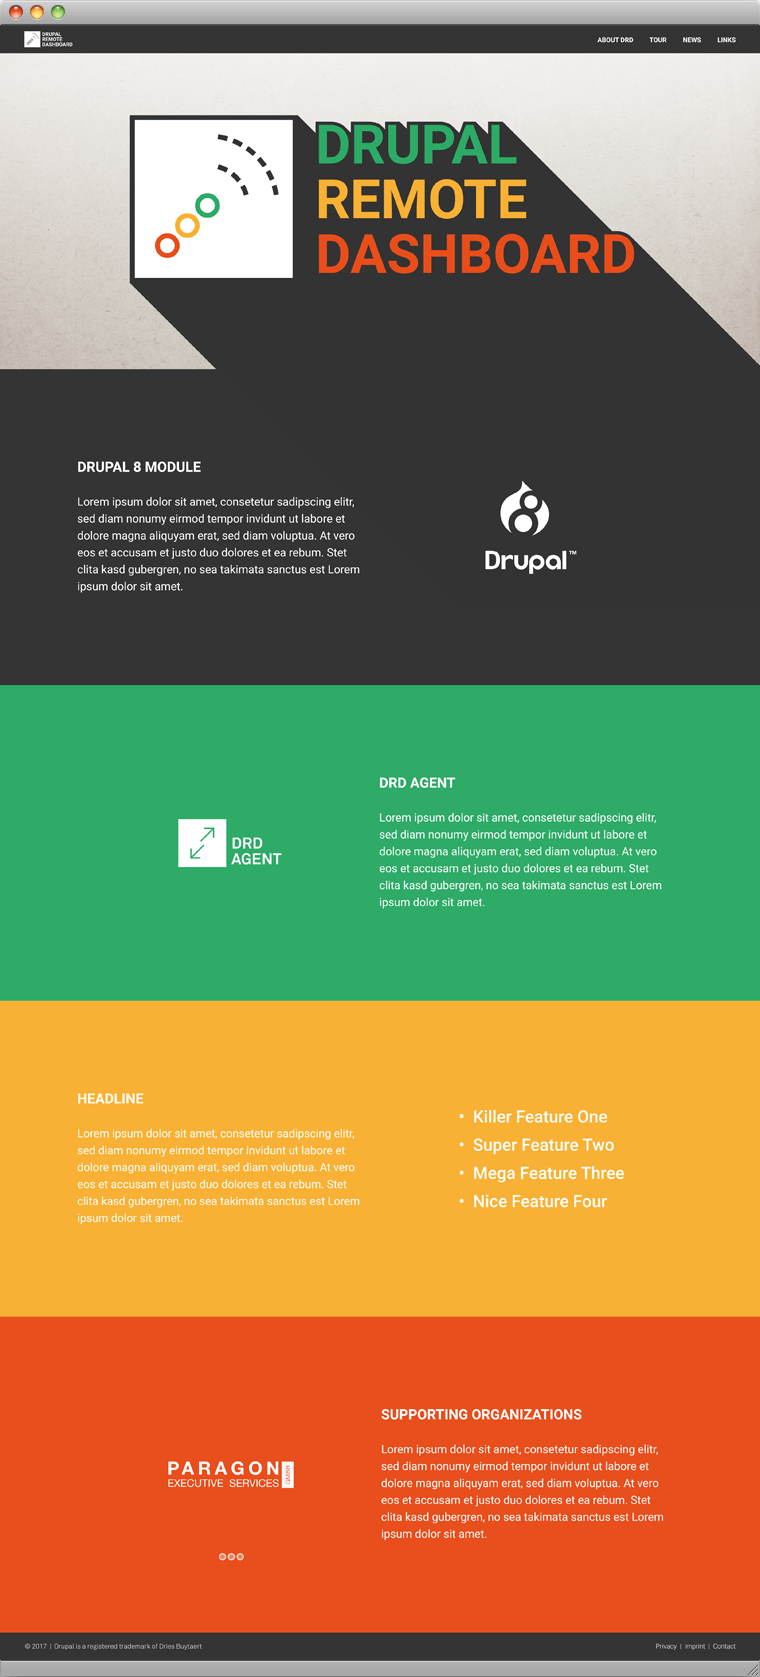 Drupal Remote Dashboard One Pager